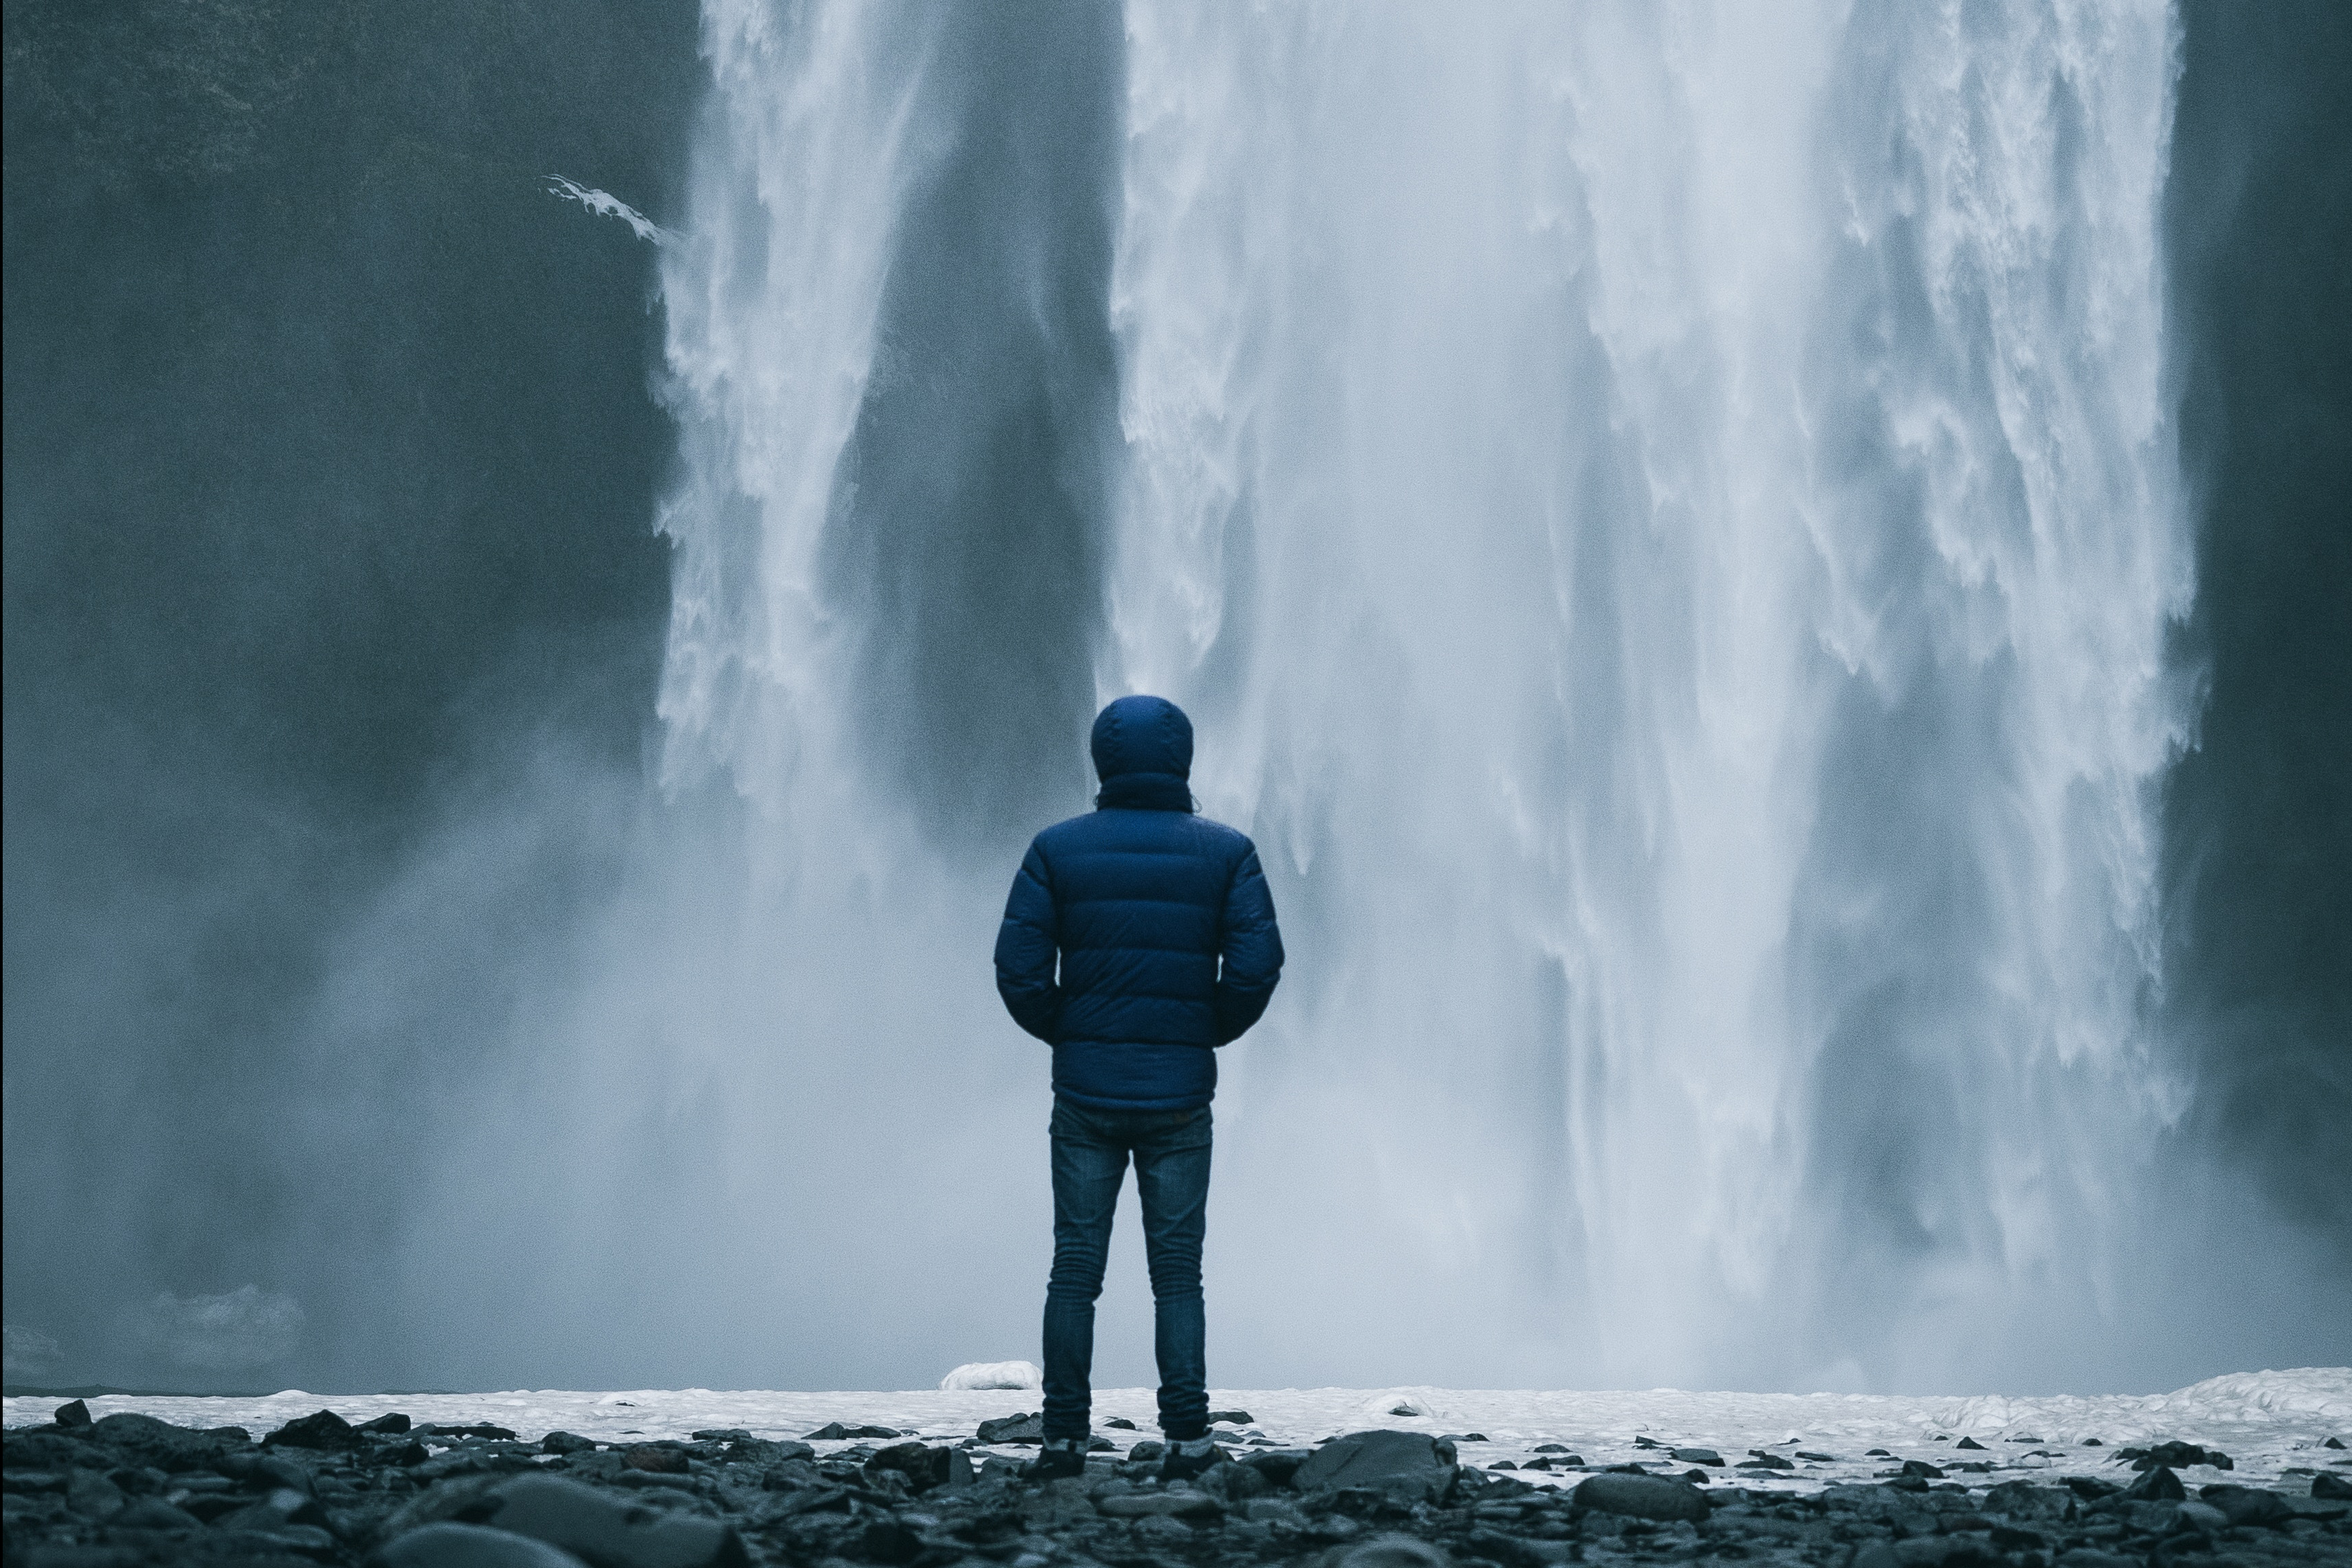 Beat your shit cycle - man staring at waterfall